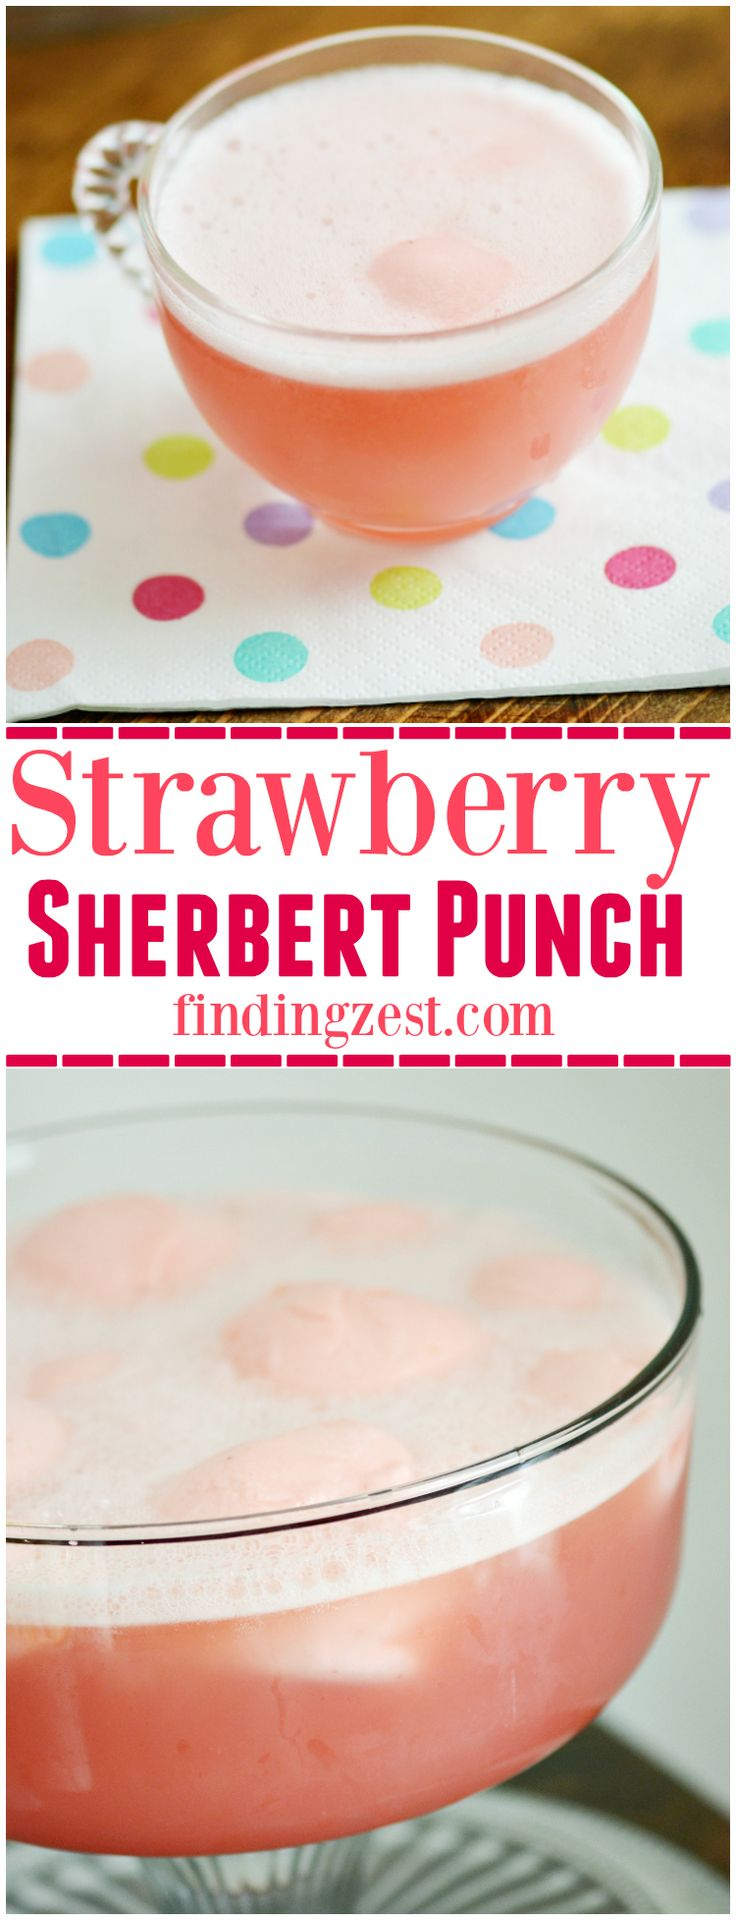 Sherbert party punch is always a crowd favorite and is super easy to make. Try this pink Strawberry Sherbert Punch for your next celebration!